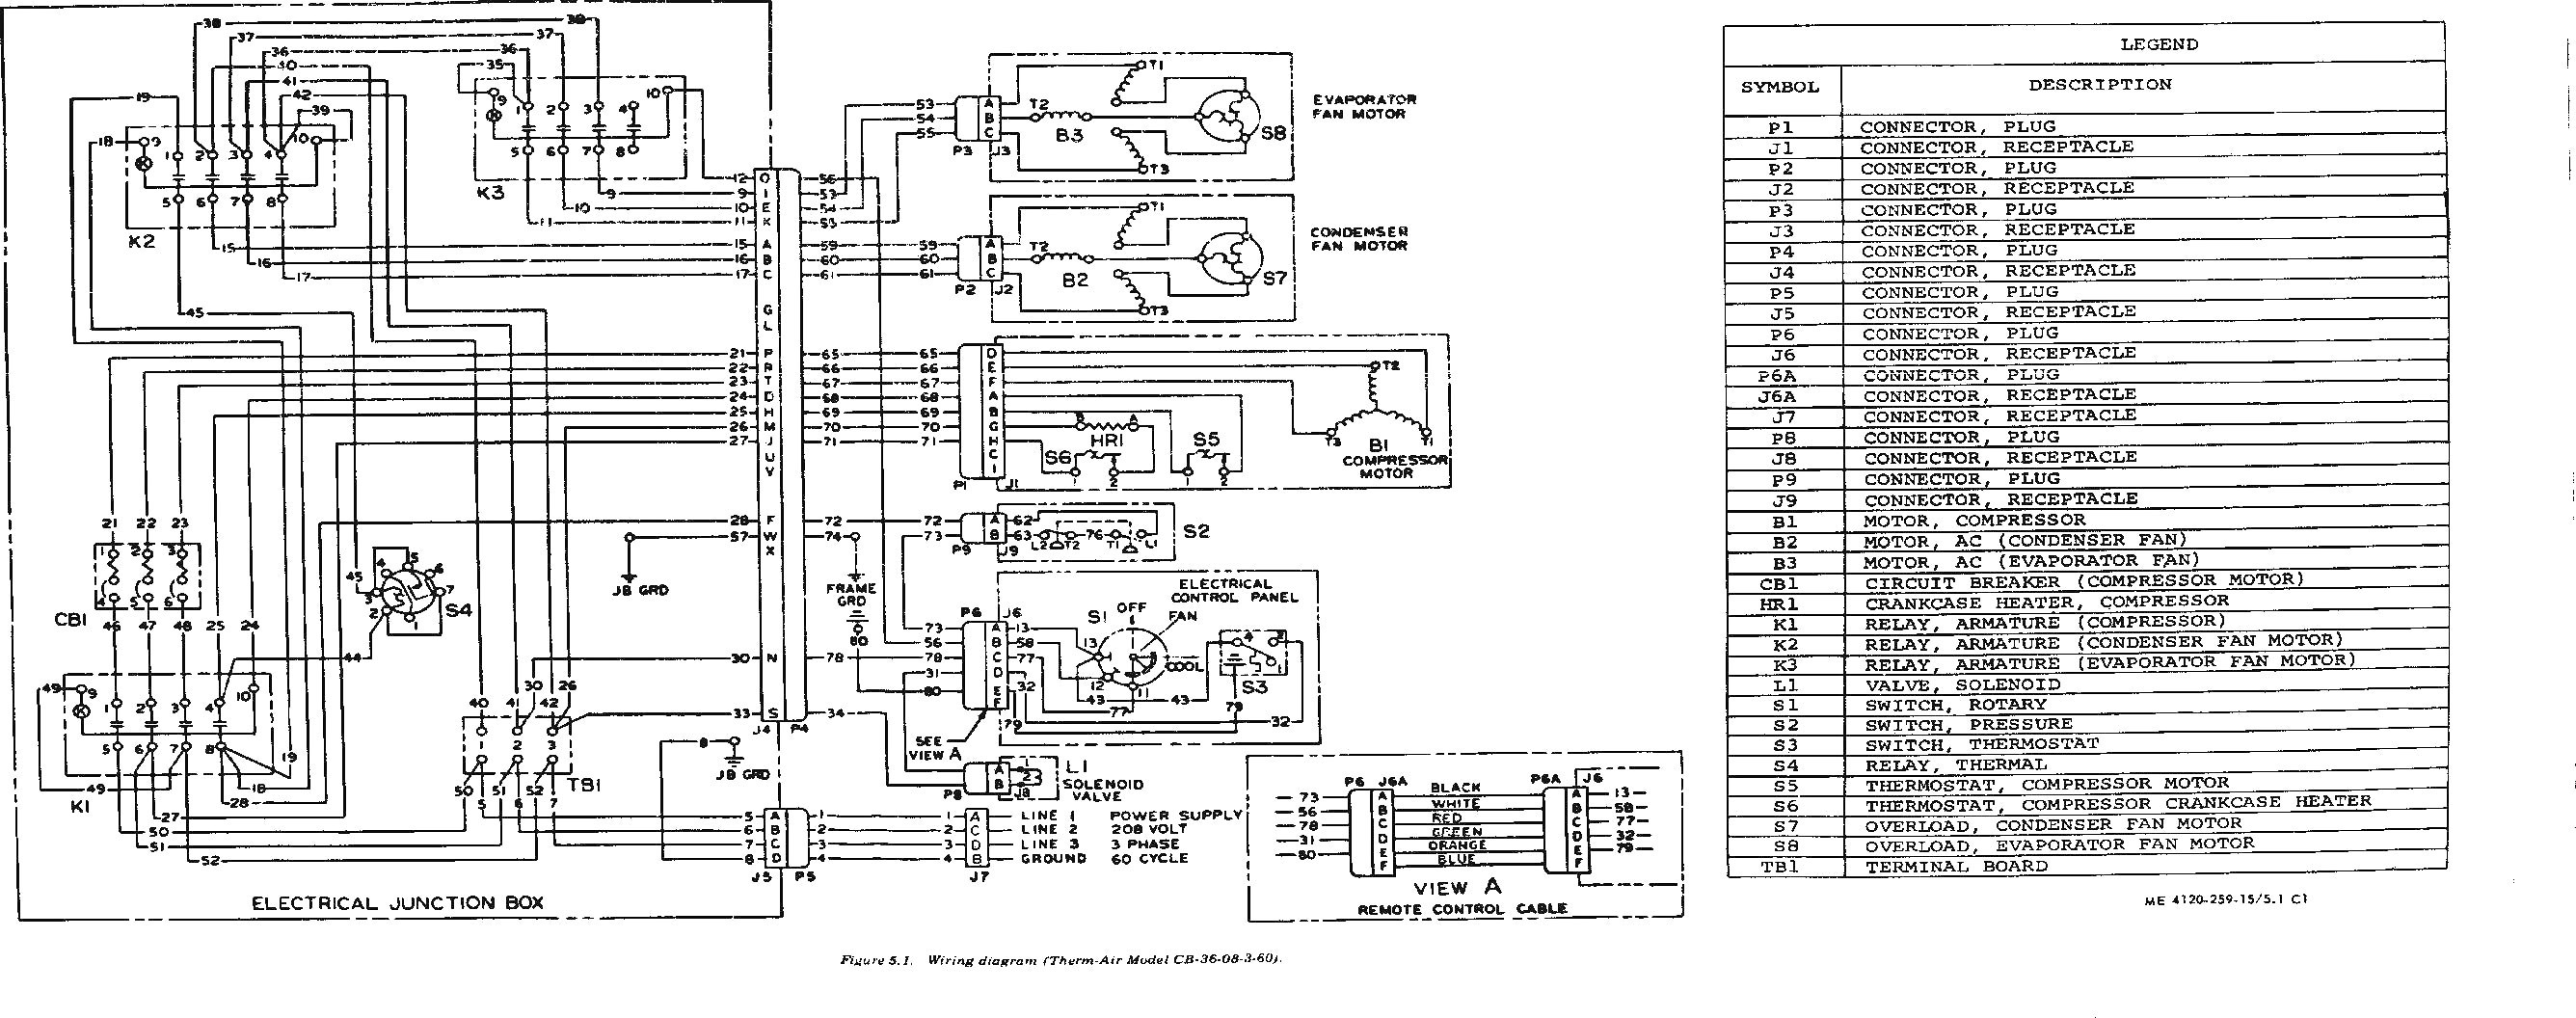 Awesome Collection Heat Pump Wiring Diagram Beautiful Fantastic Trane Heat Pump Wiring With Additional